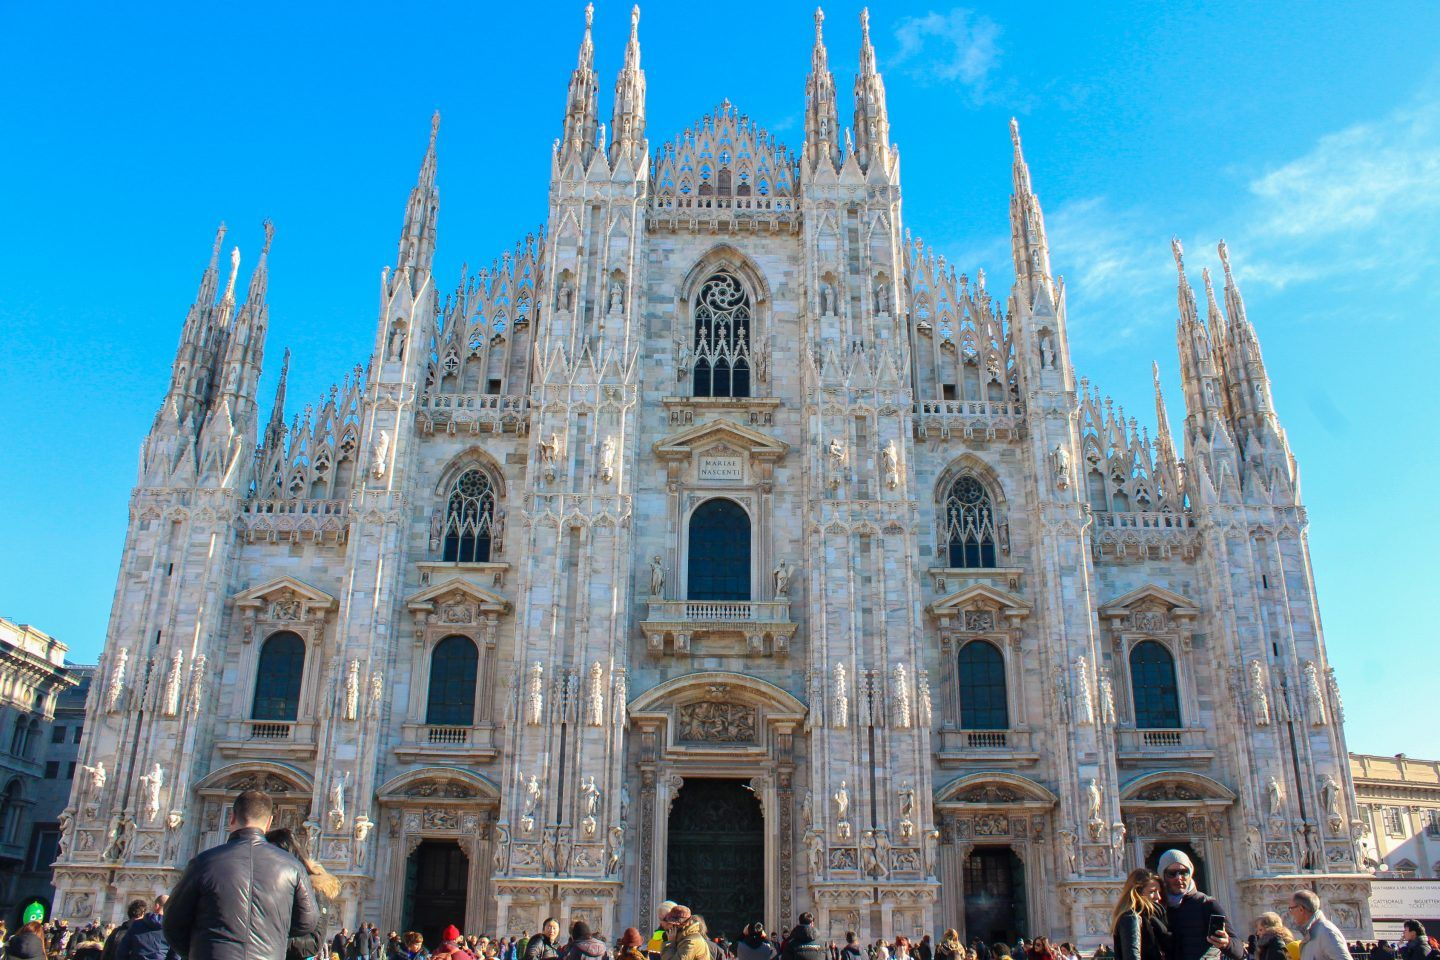 One day trip to Milan. Couple adventure.